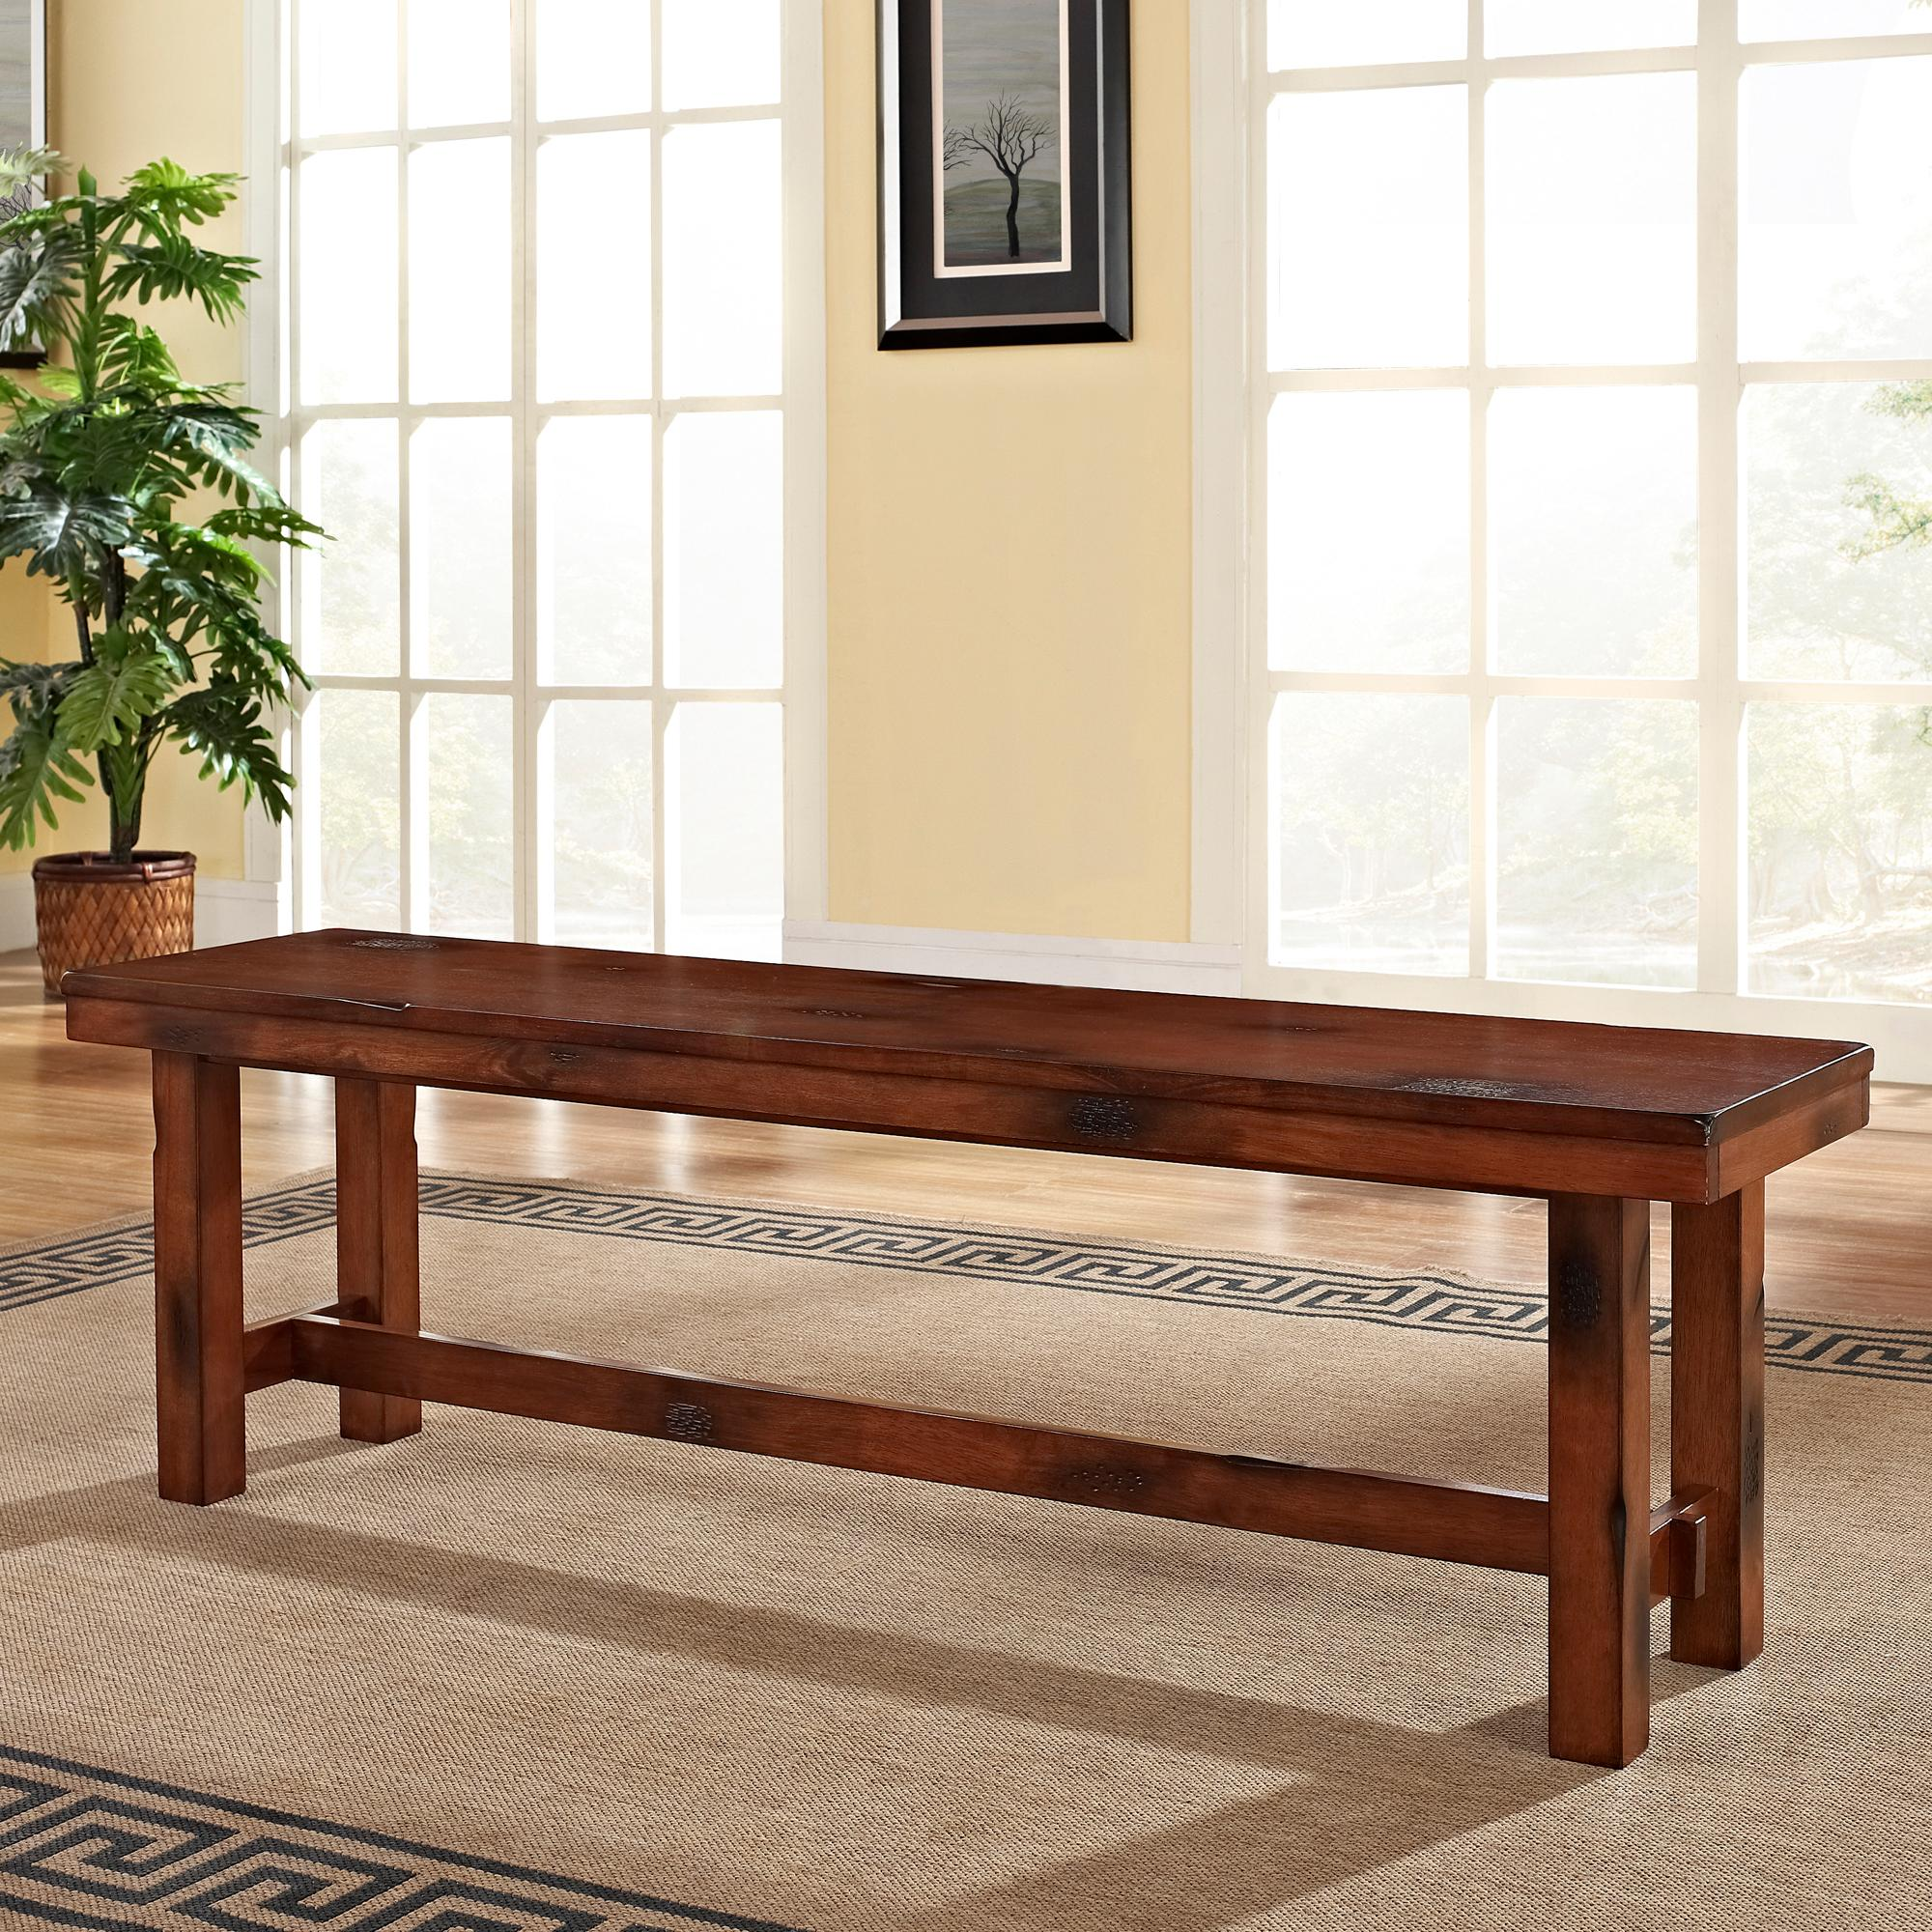 Dining Table With A Bench: WE Furniture AZBH1DO Solid Wood Dining Bench